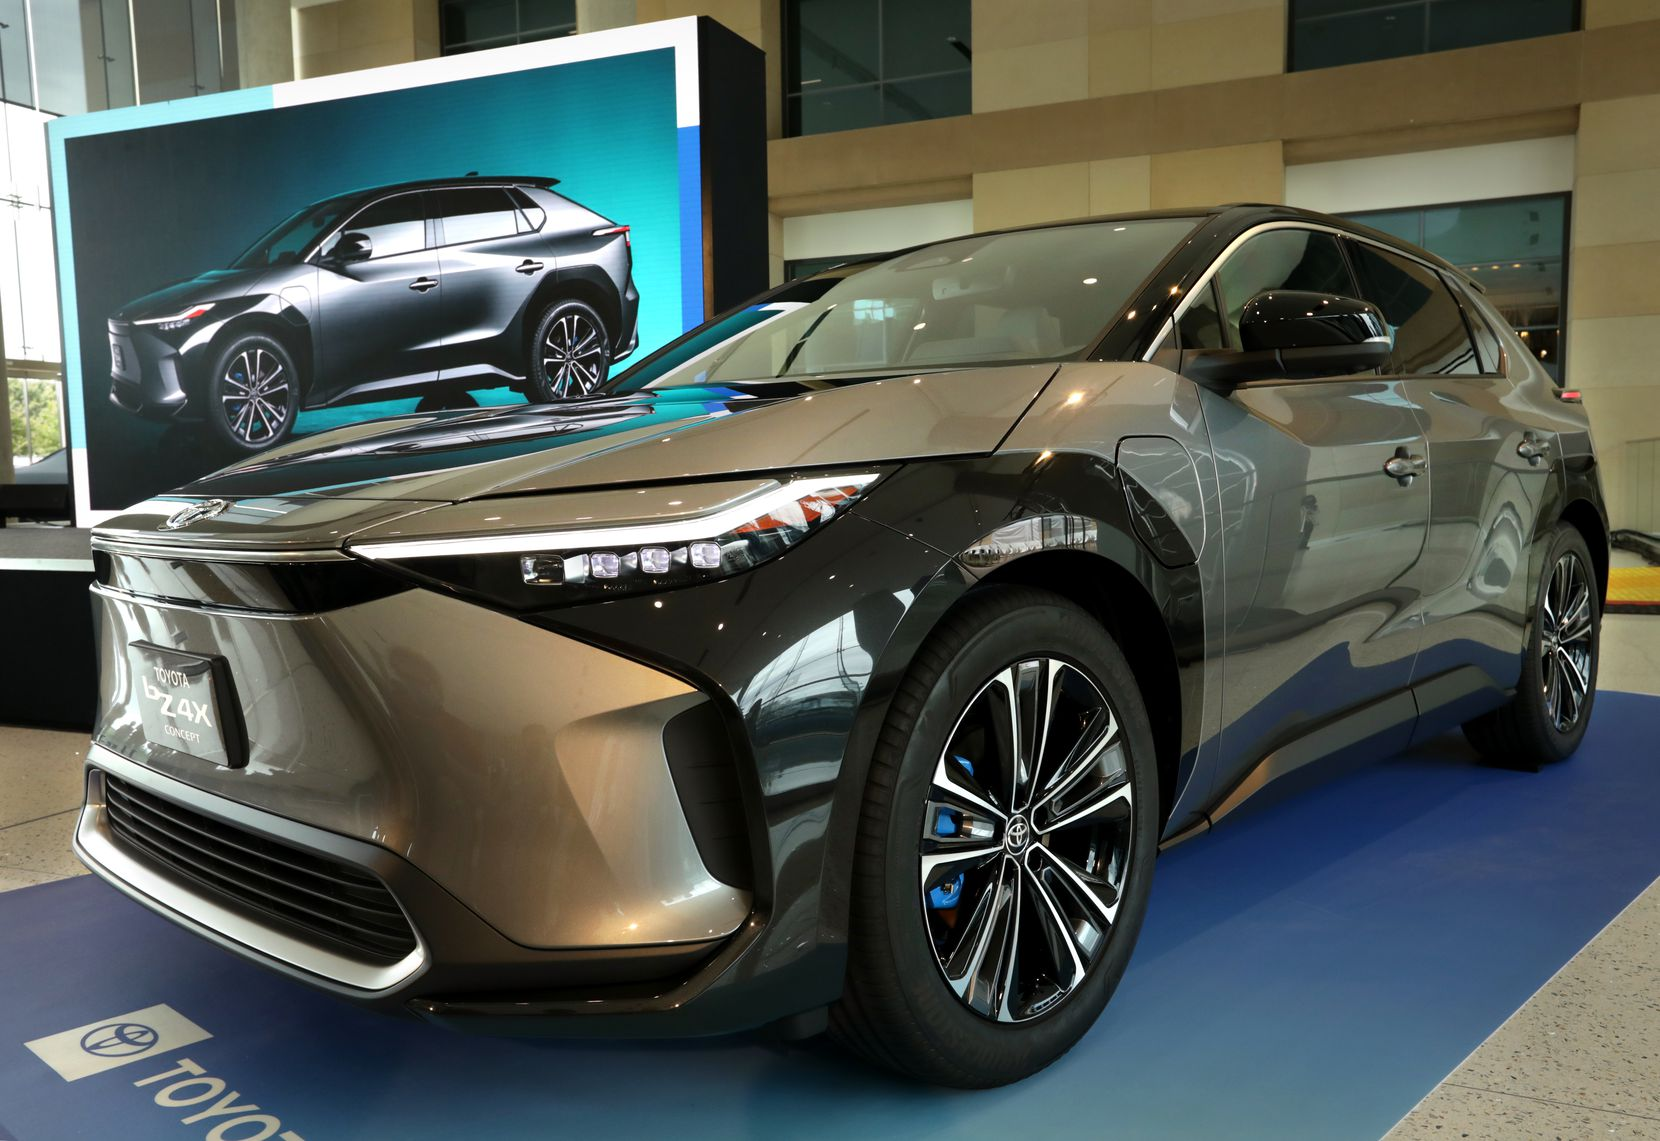 """At an event Wednesday, Toyota touted its new battery electric SUV, the BZ4X, which it plans to release worldwide in mid-2022. BZ, or """"Beyond Zero,"""" will be Toyota's platform for future all-electric vehicles."""